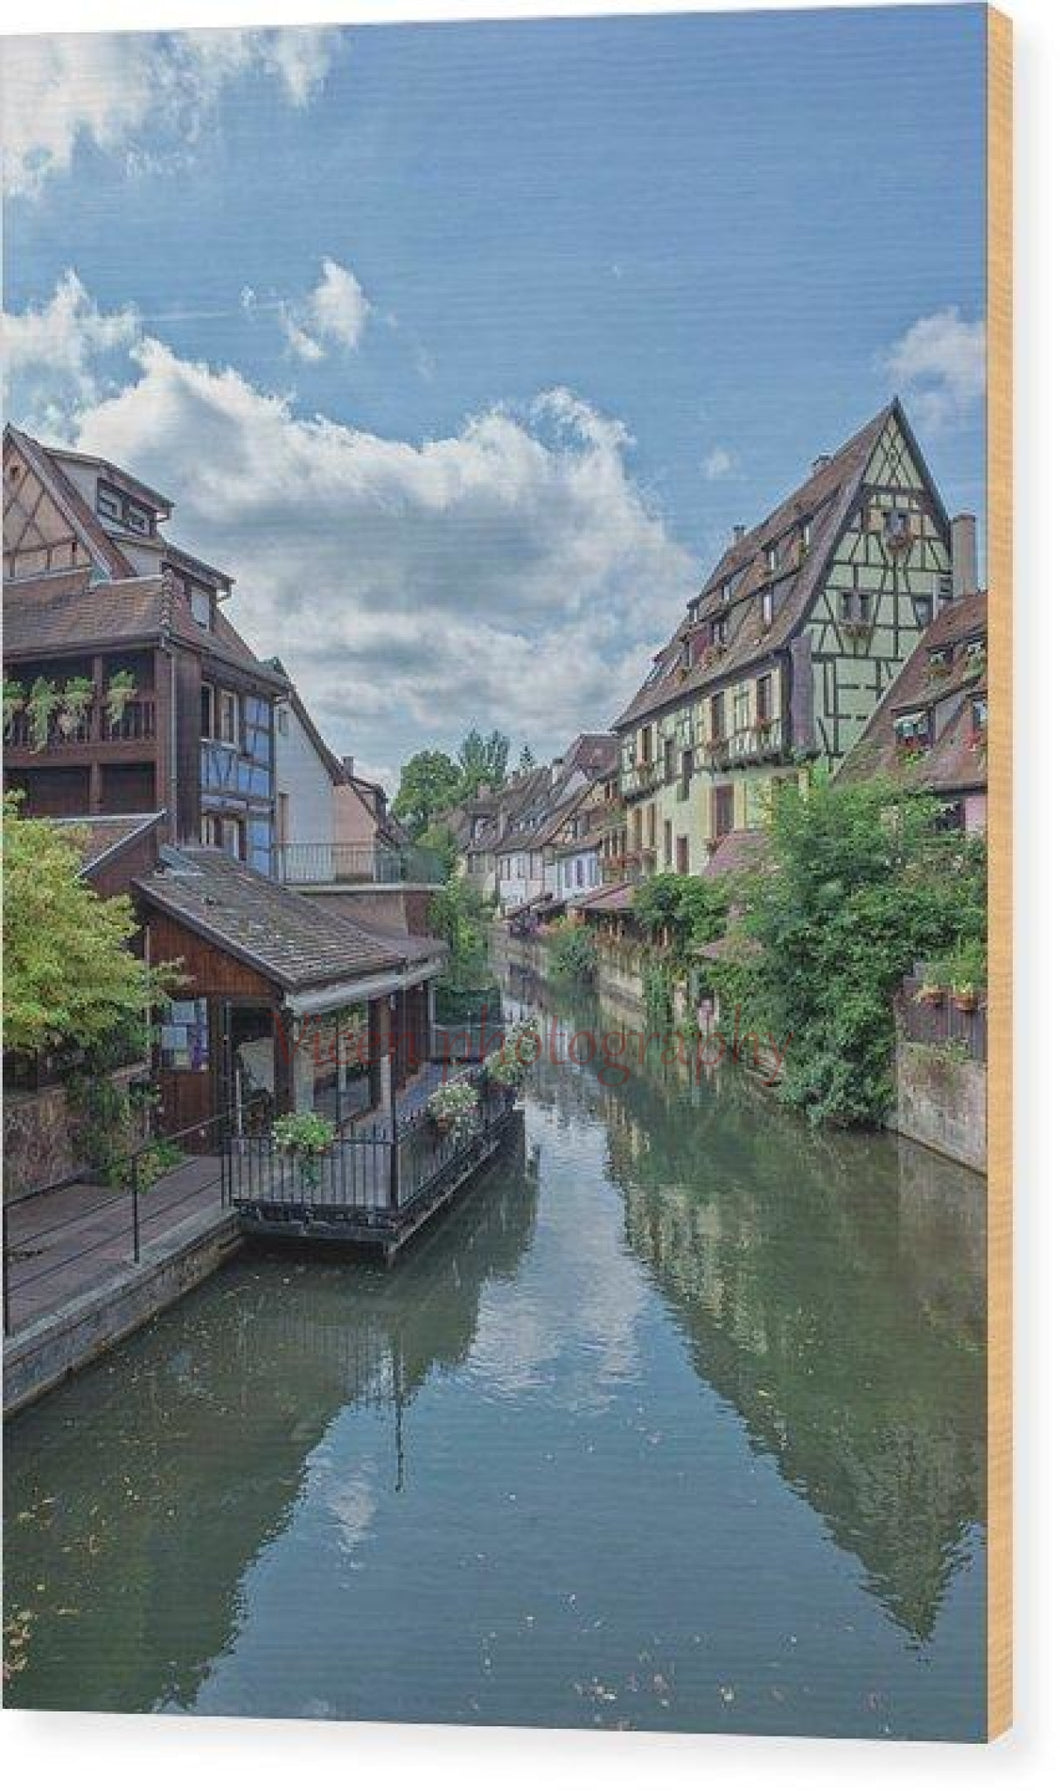 The Village Of Colmar In France - Wood Print 6.625 X 10.000